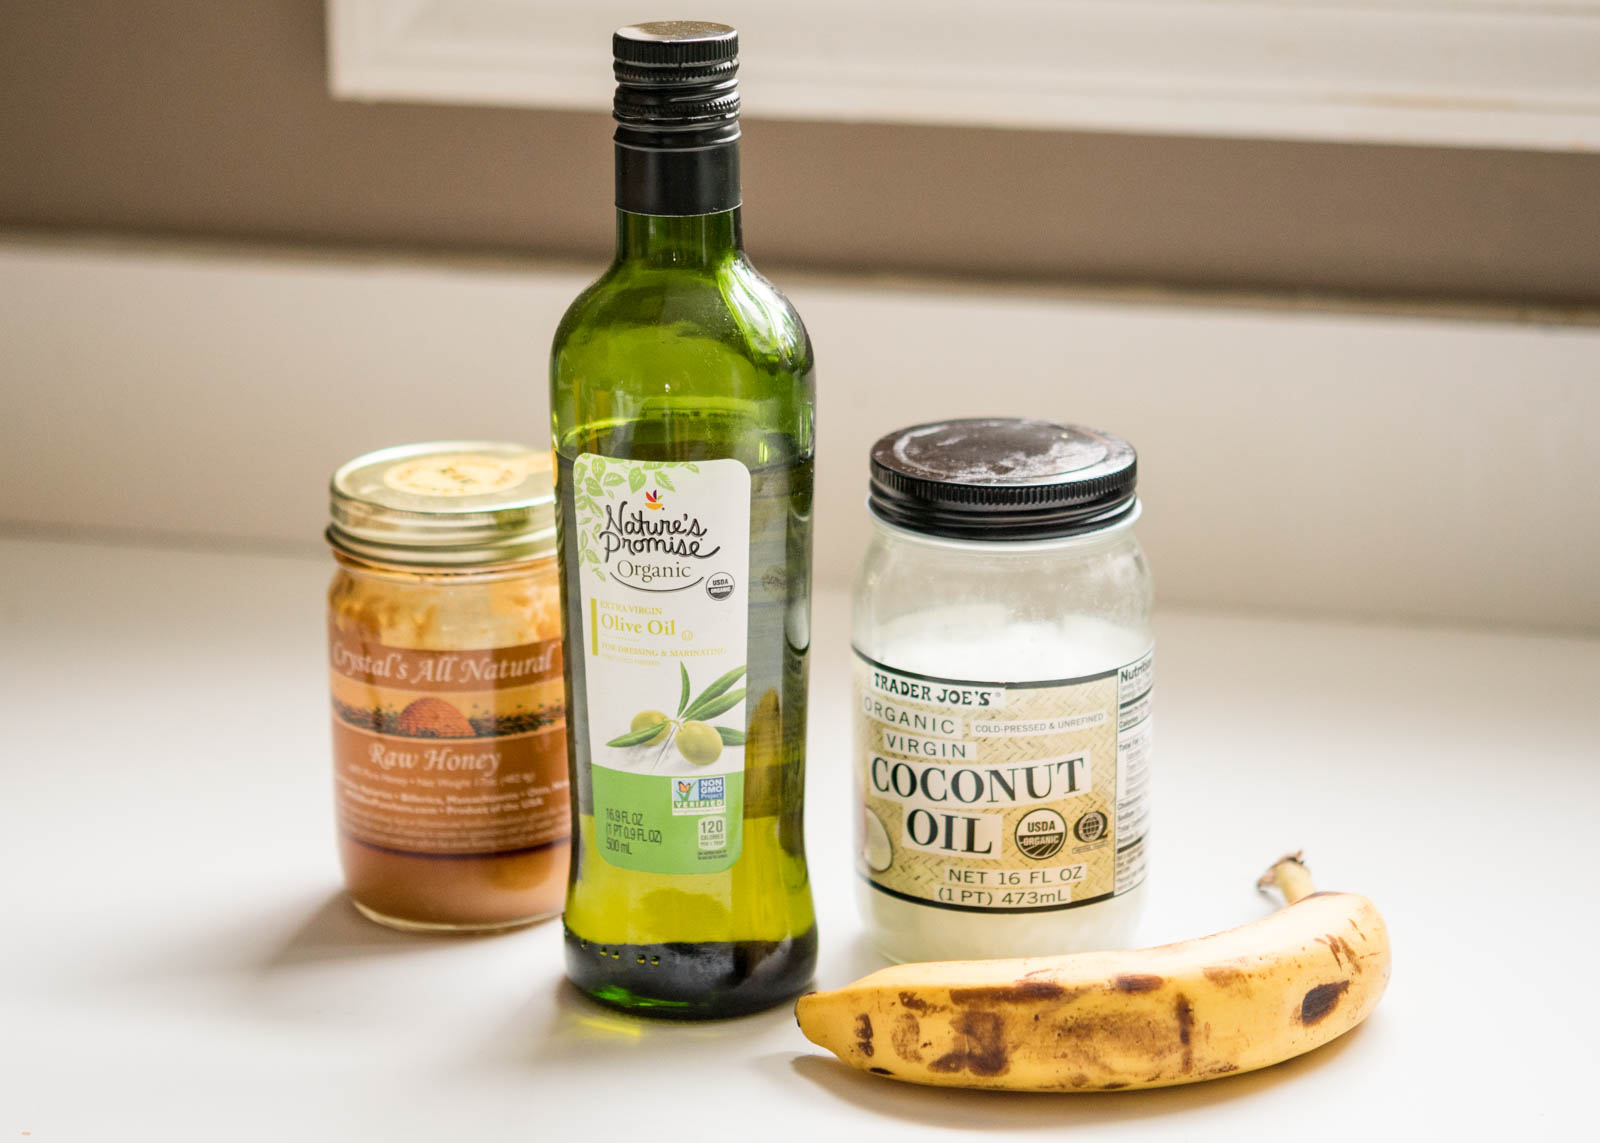 Amazing Diy Coconut Oil Hair Masks For The Delhi Winters